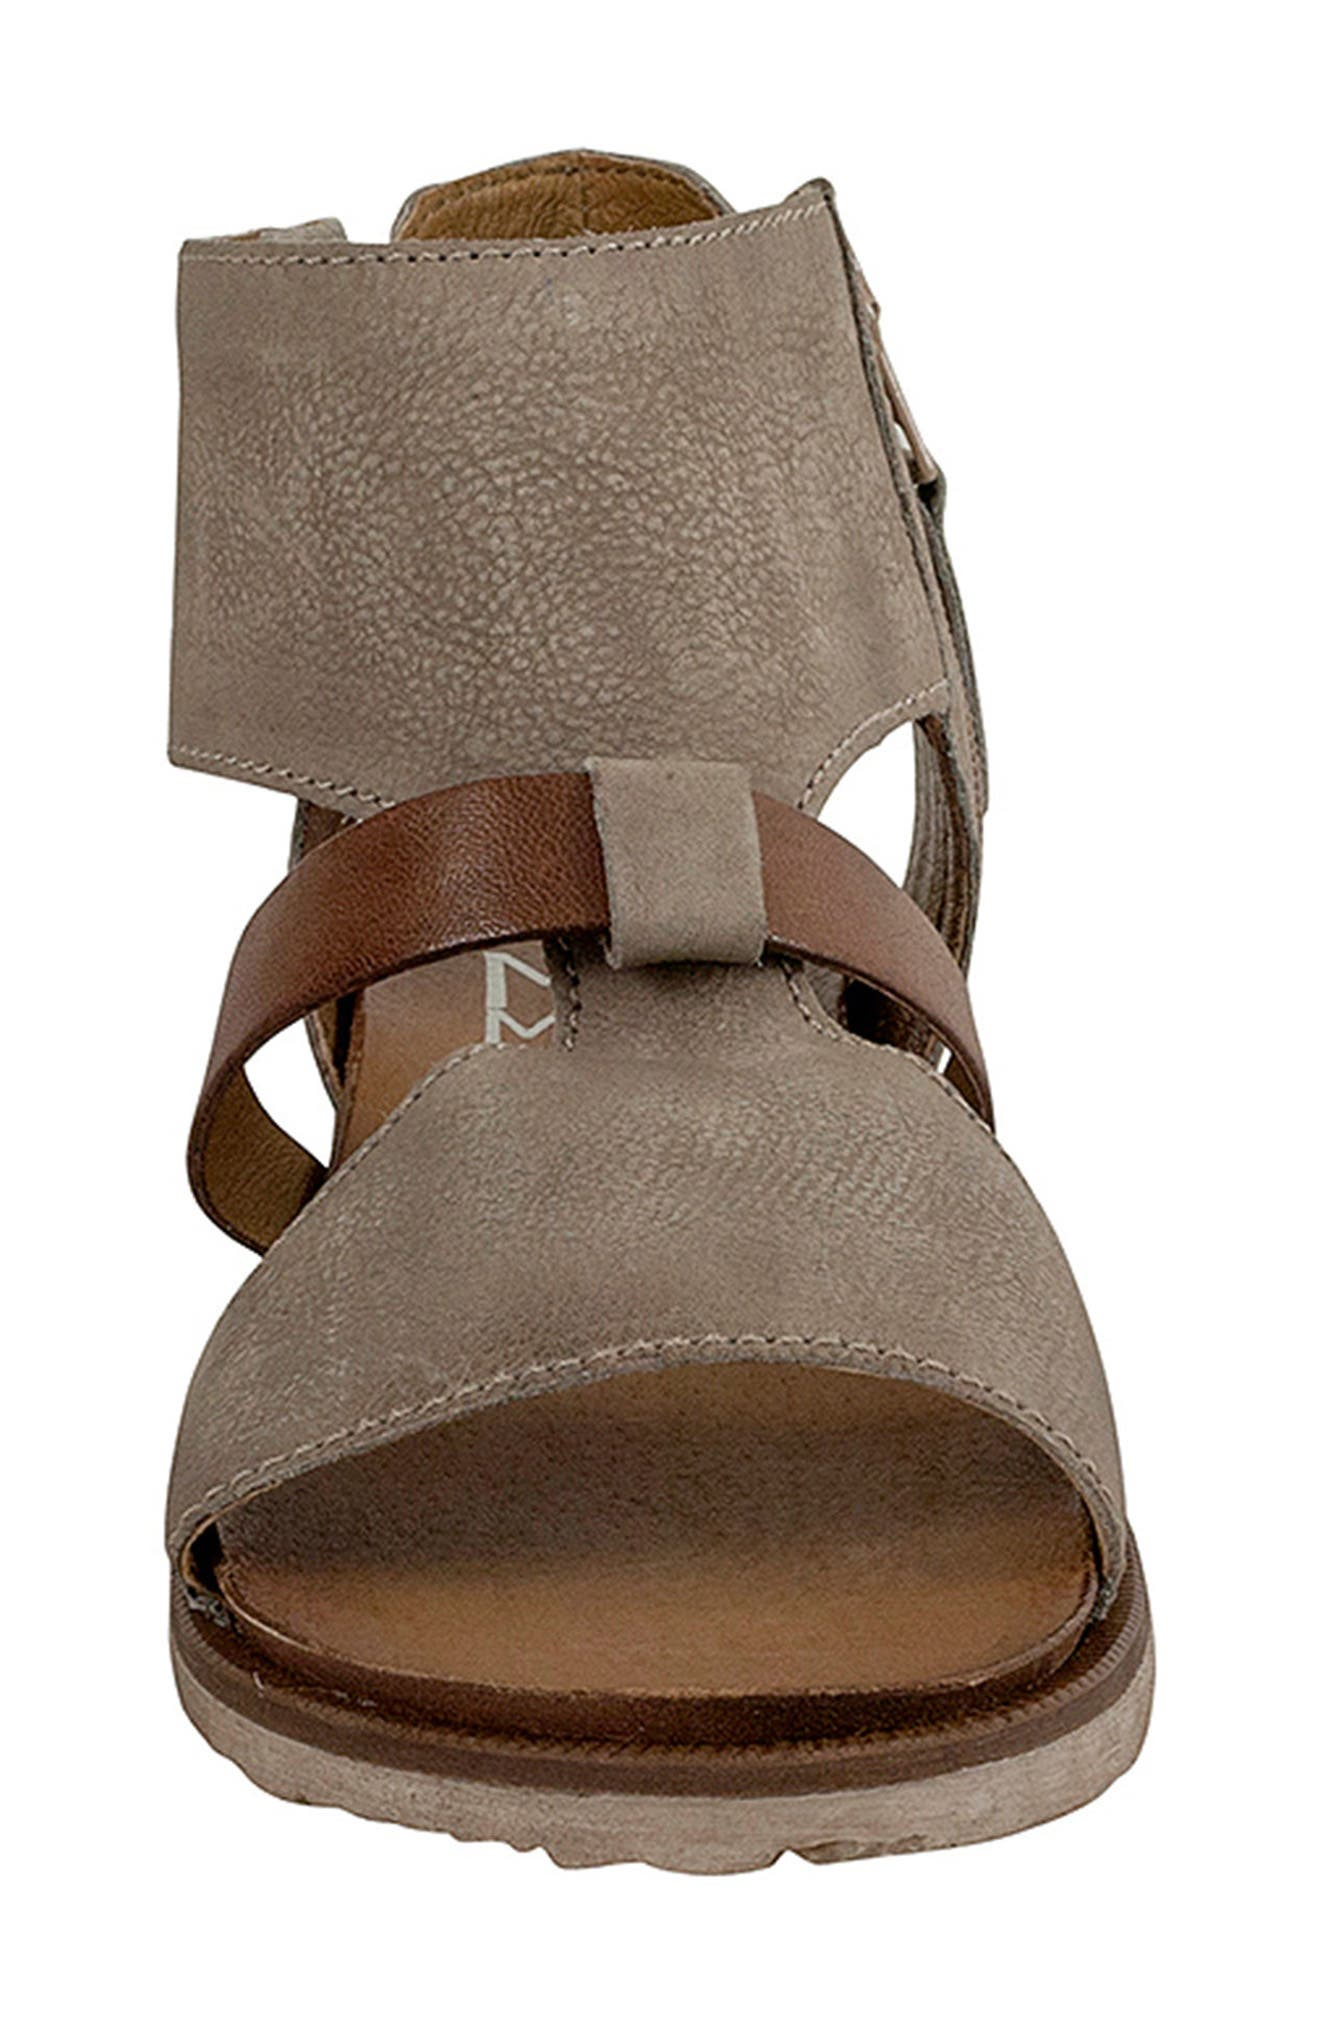 'Tamsyn' Sandal,                             Alternate thumbnail 4, color,                             Pebble Leather